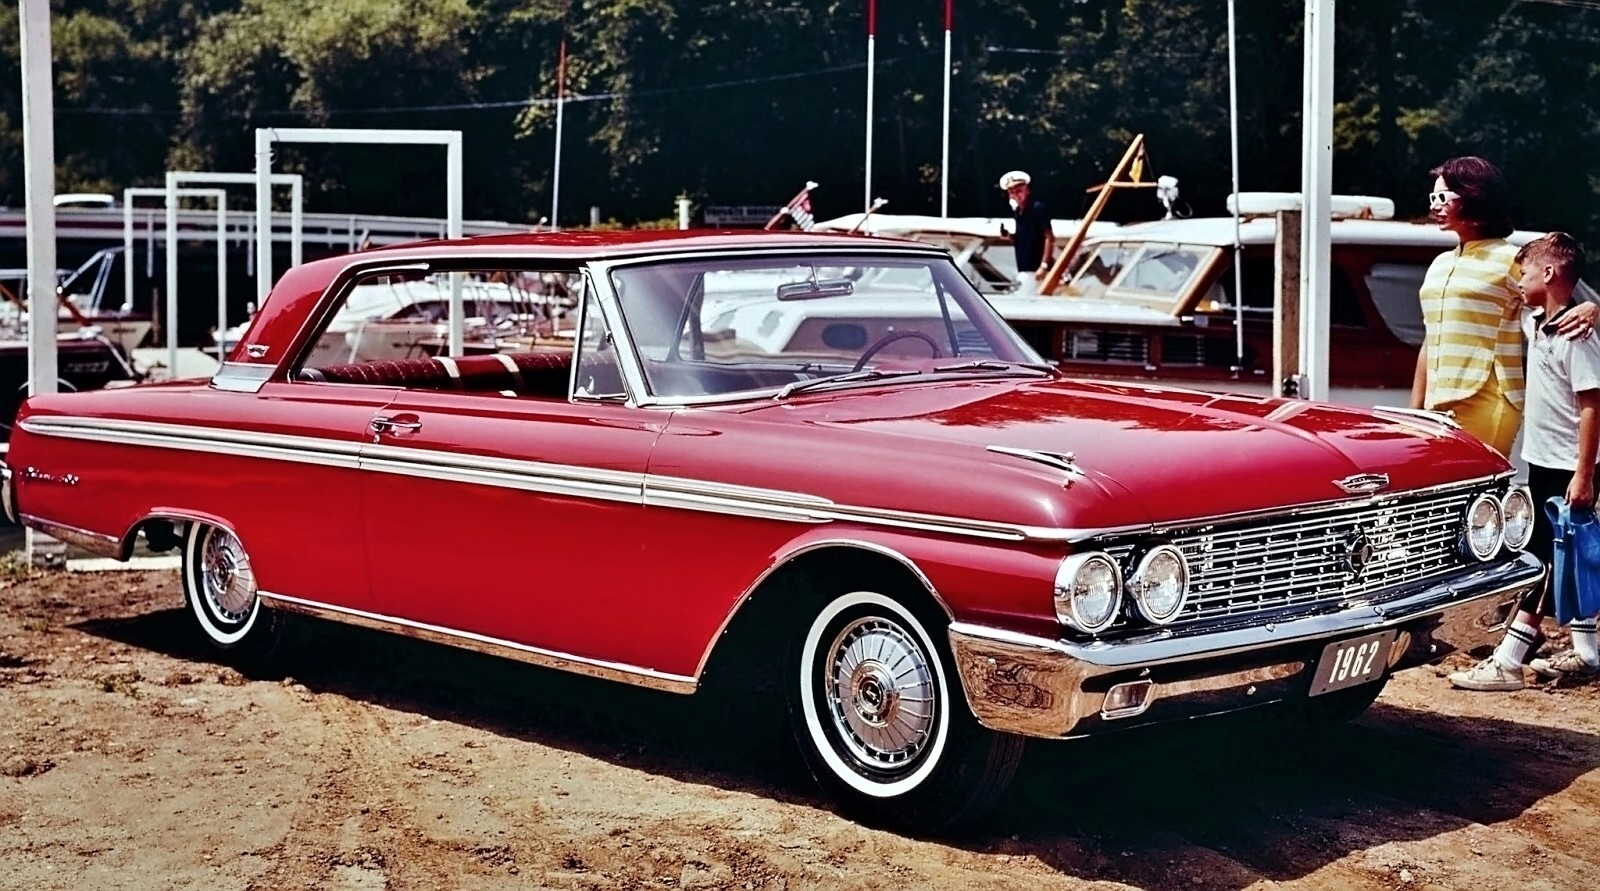 ford galaxie 1962 review amazing pictures and images look at the car. Black Bedroom Furniture Sets. Home Design Ideas